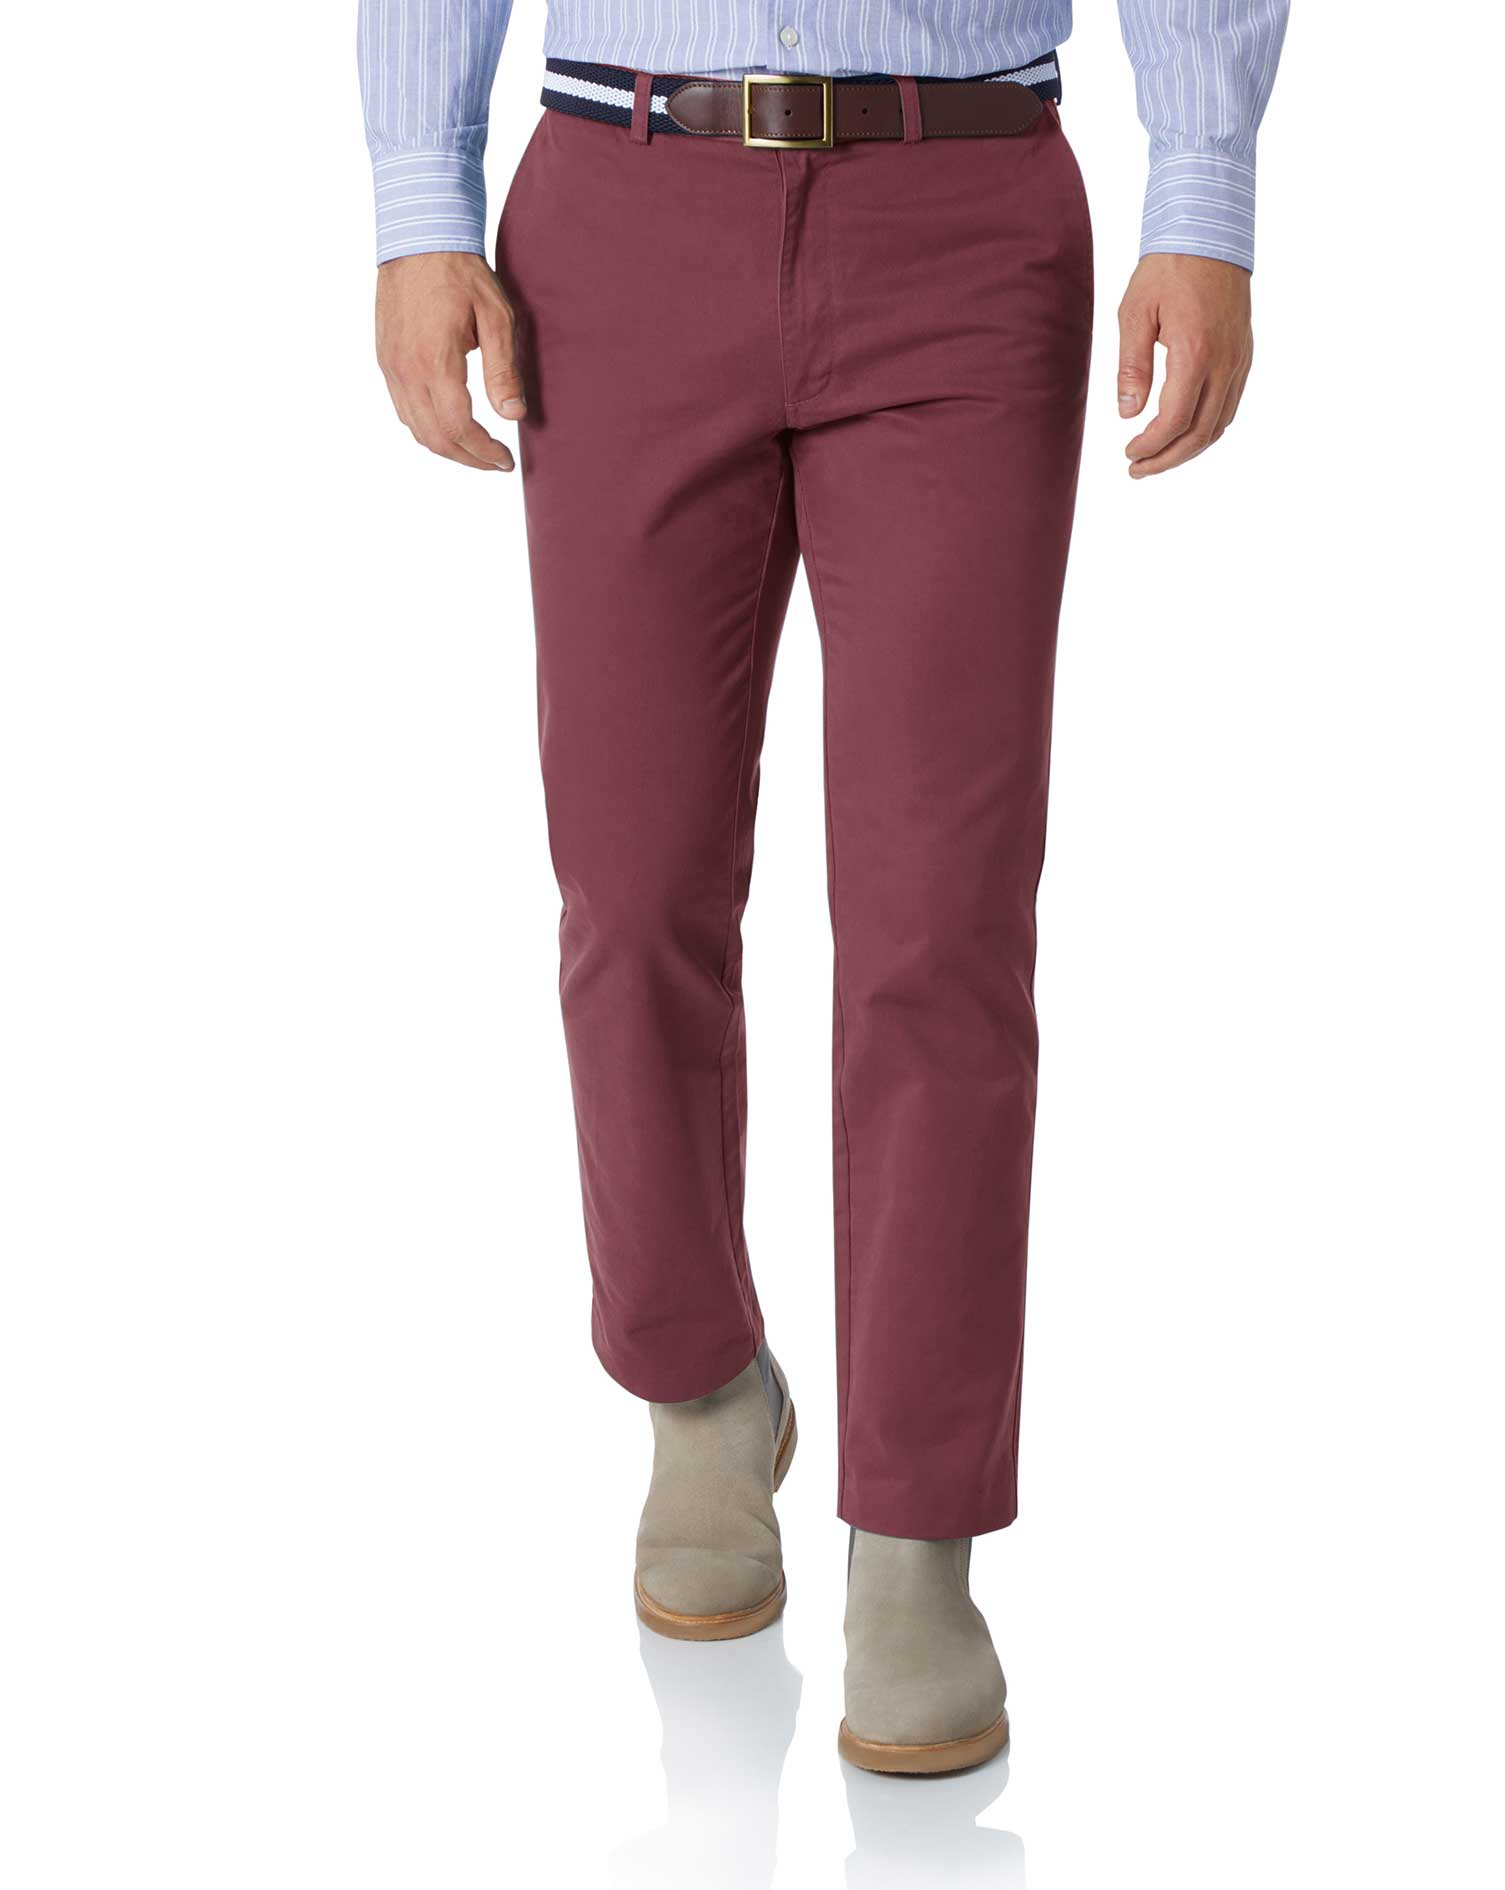 Dark Pink Slim Fit Flat Front Washed Cotton Chino Trousers Size W32 L38 by Charles Tyrwhitt